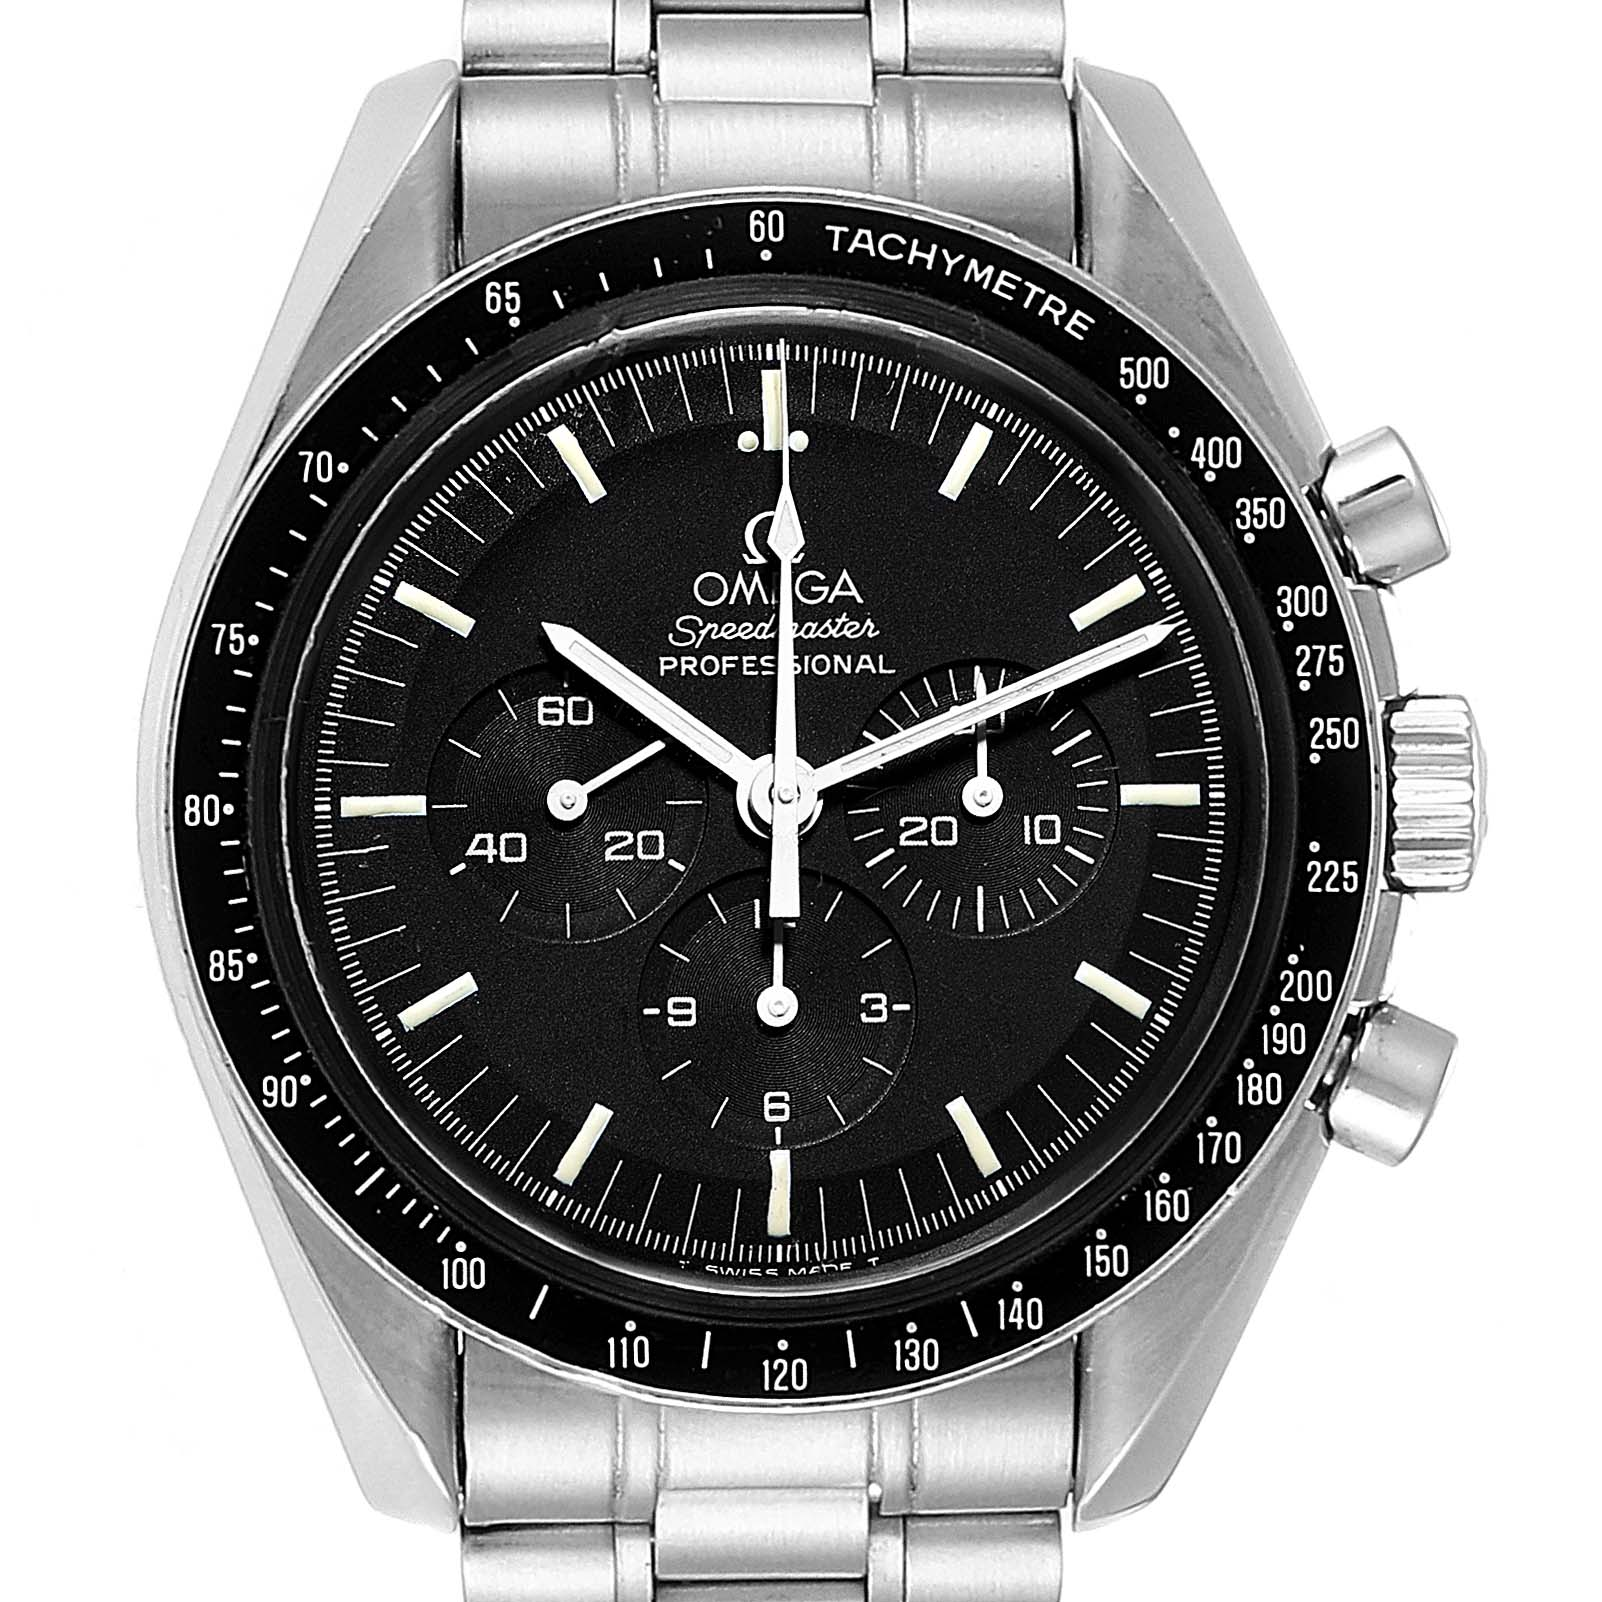 Omega Speedmaster Vintage MoonWatch Caliber 861 Mens Watch 145.022